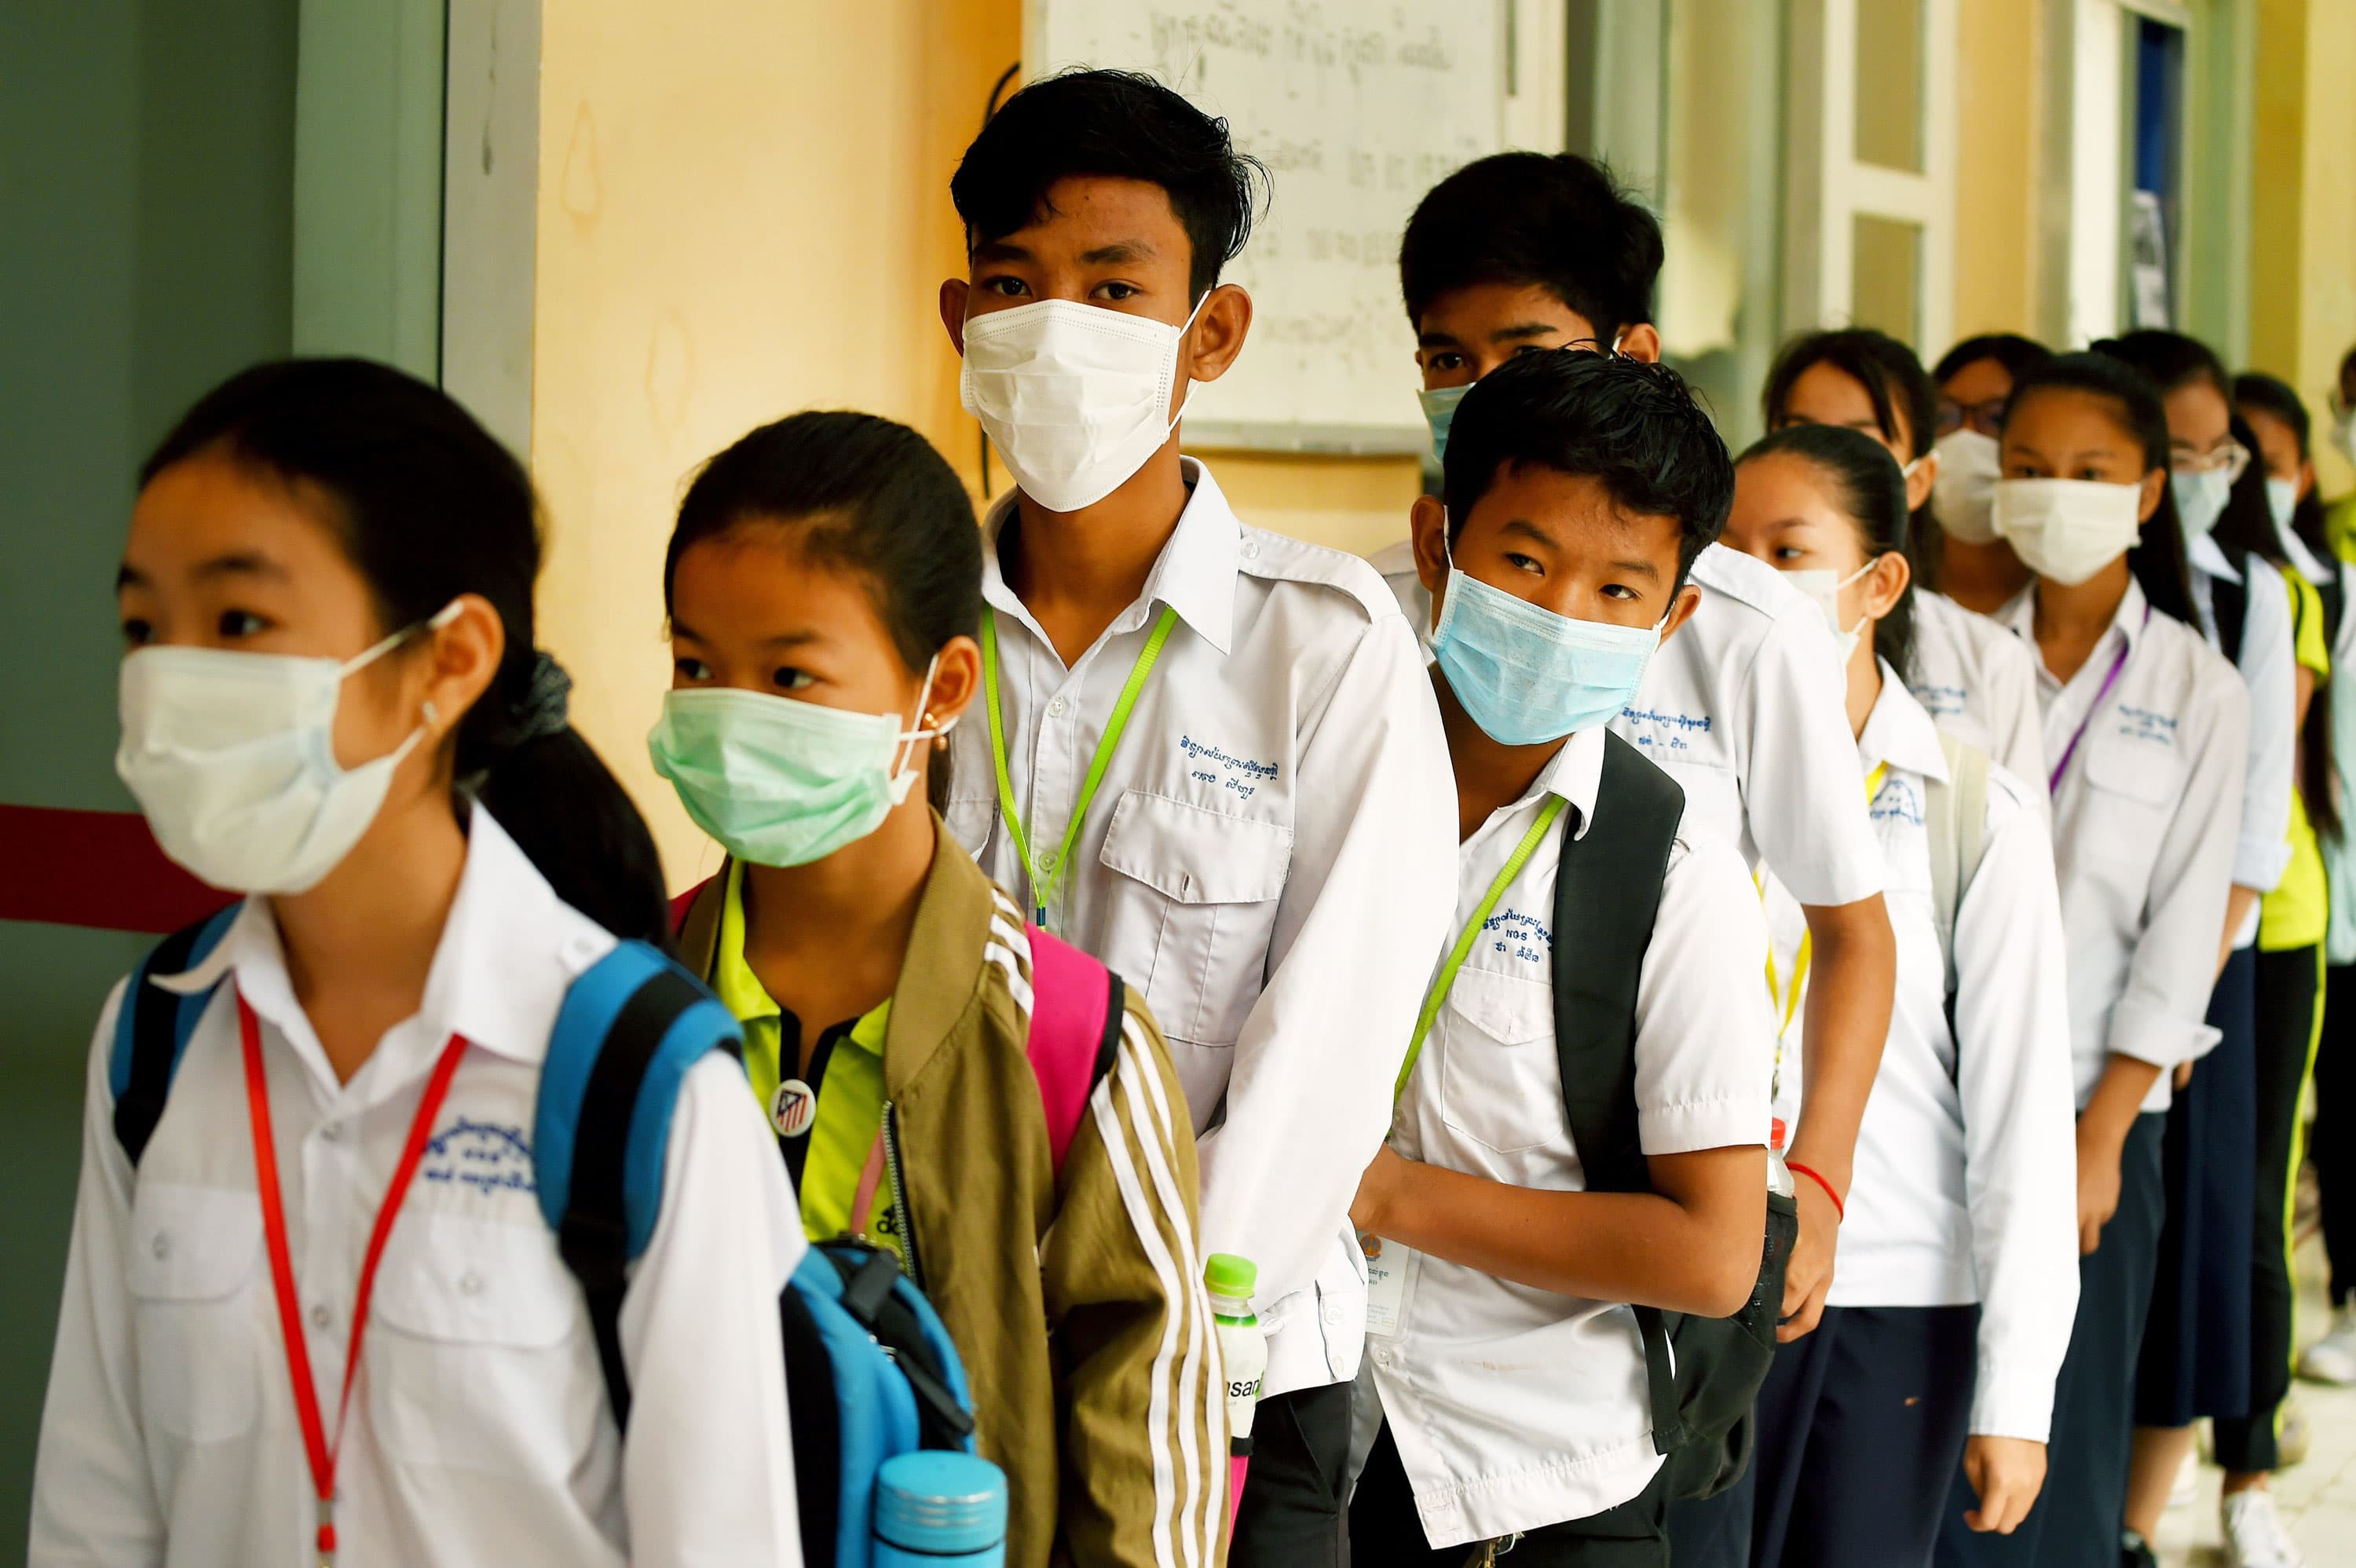 Almost 300 million kids missing school because of the coronavirus, UNESCO says